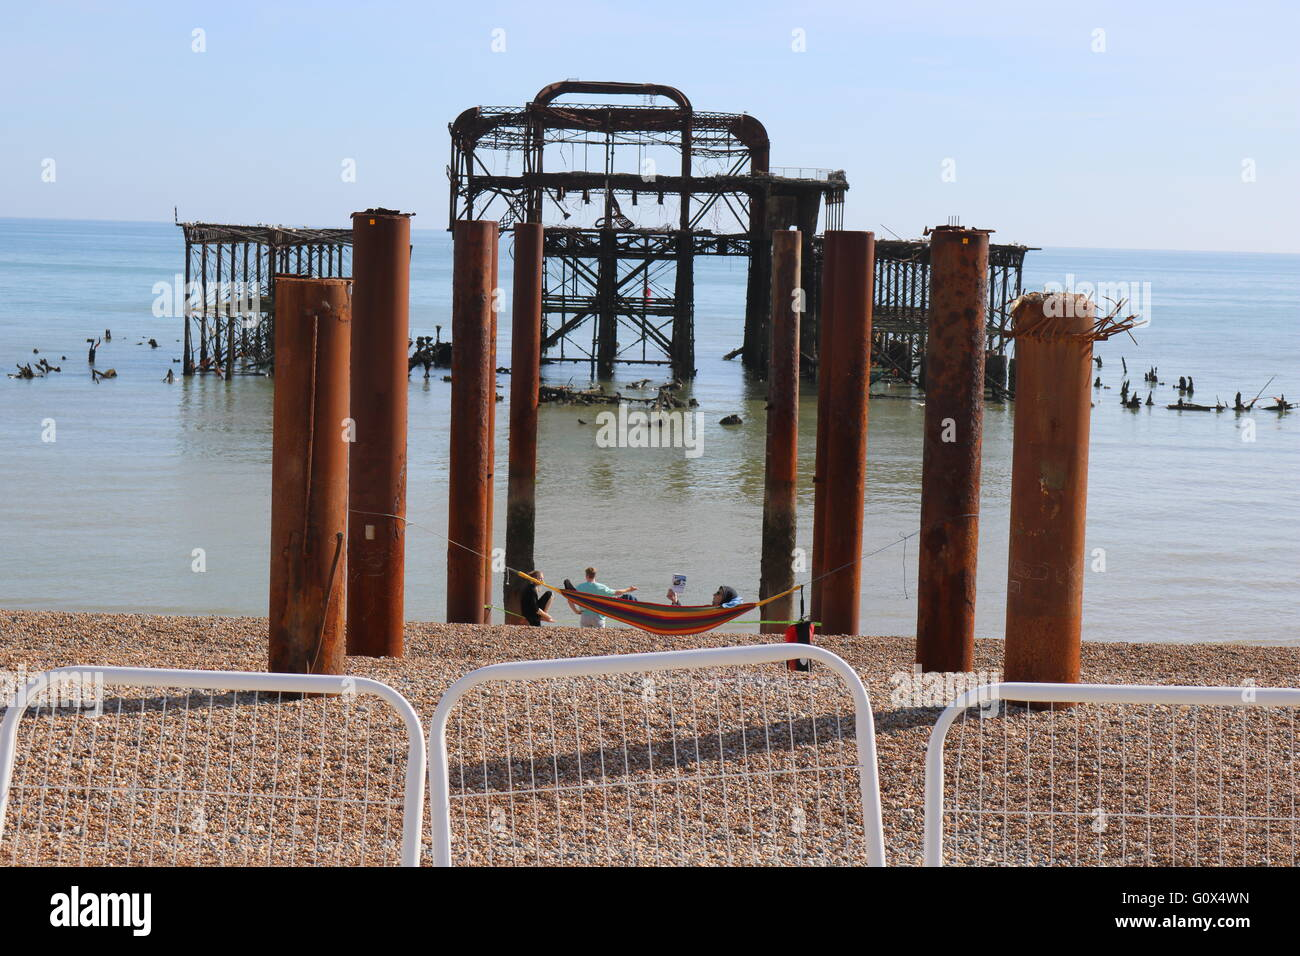 A sunbather rests on a hammock supported on the old posts from the burnt down remains of Brighton West Pier. - Stock Image